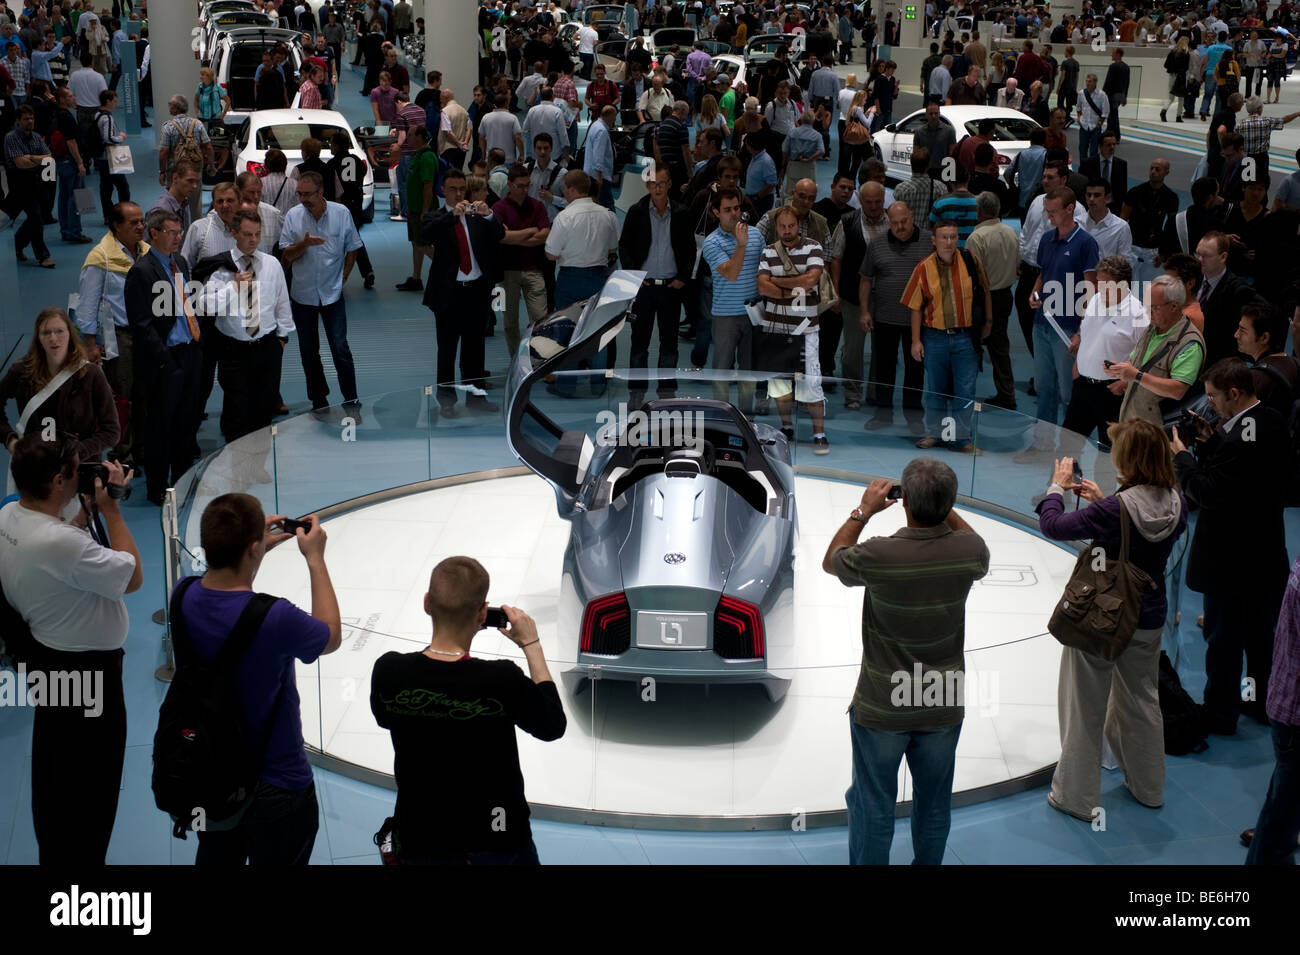 Volkswagen L1 ultra low fuel consumption concept vehicle on display at the Frankfurt Motor Show 2009 - Stock Image